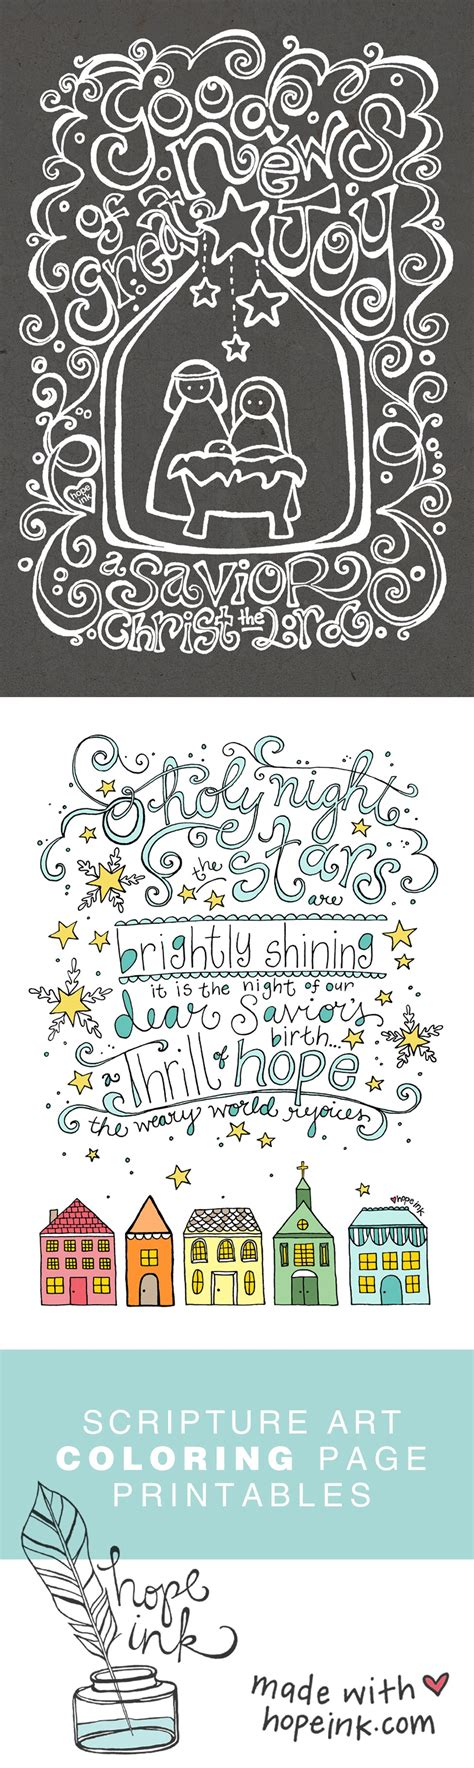 pinterest christmas scripture art coloring printables scripture